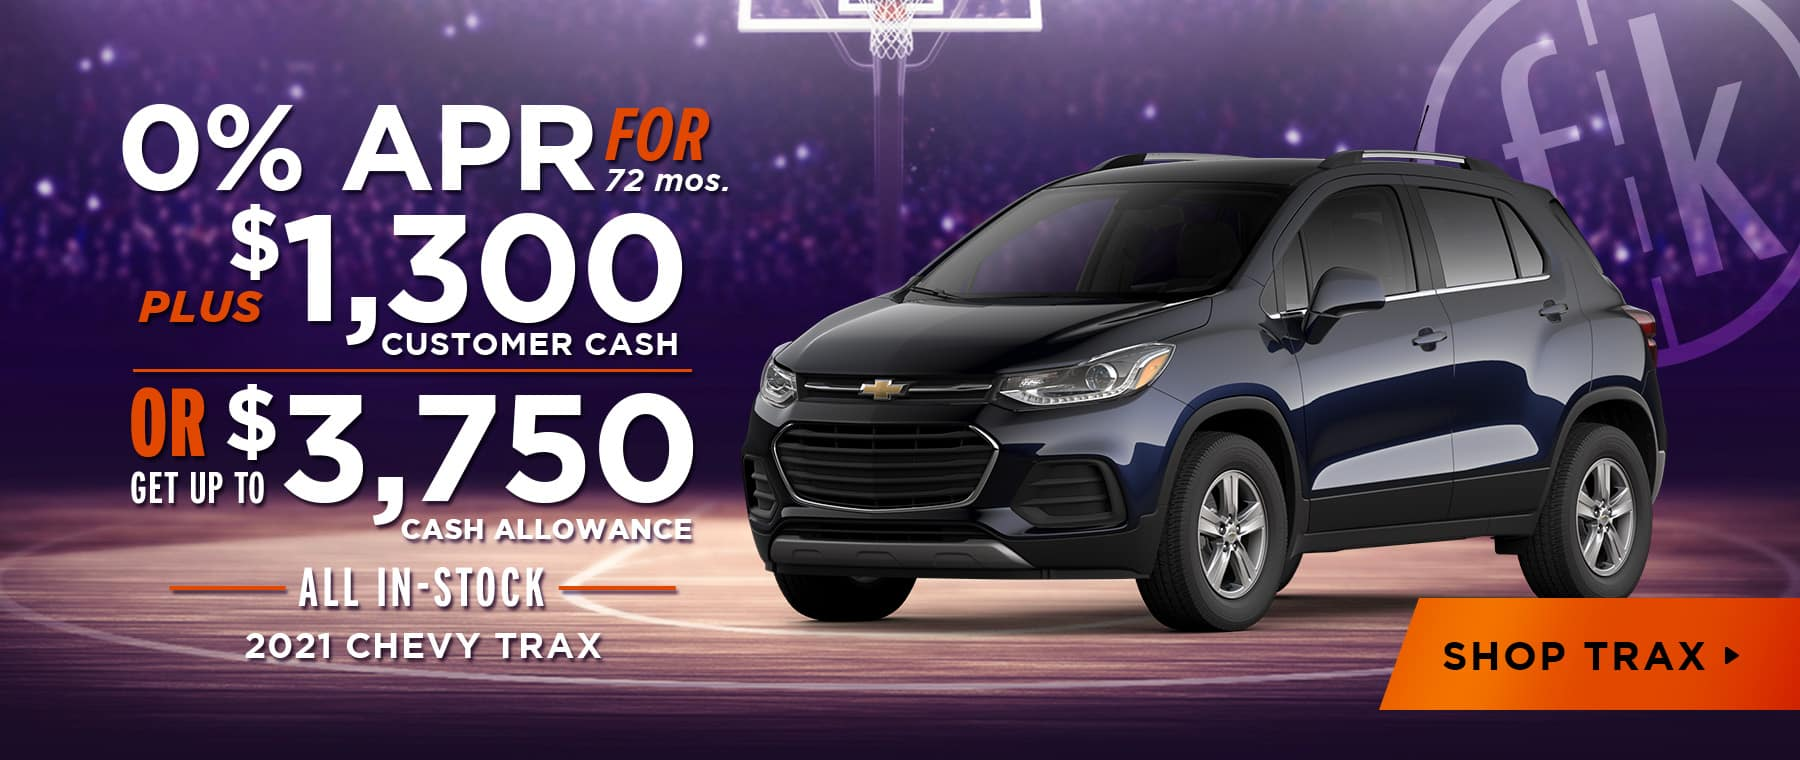 2021 Trax 0% for 72 mos + $1,300 Customer Cash OR Up To $3,750 Cash Allowance